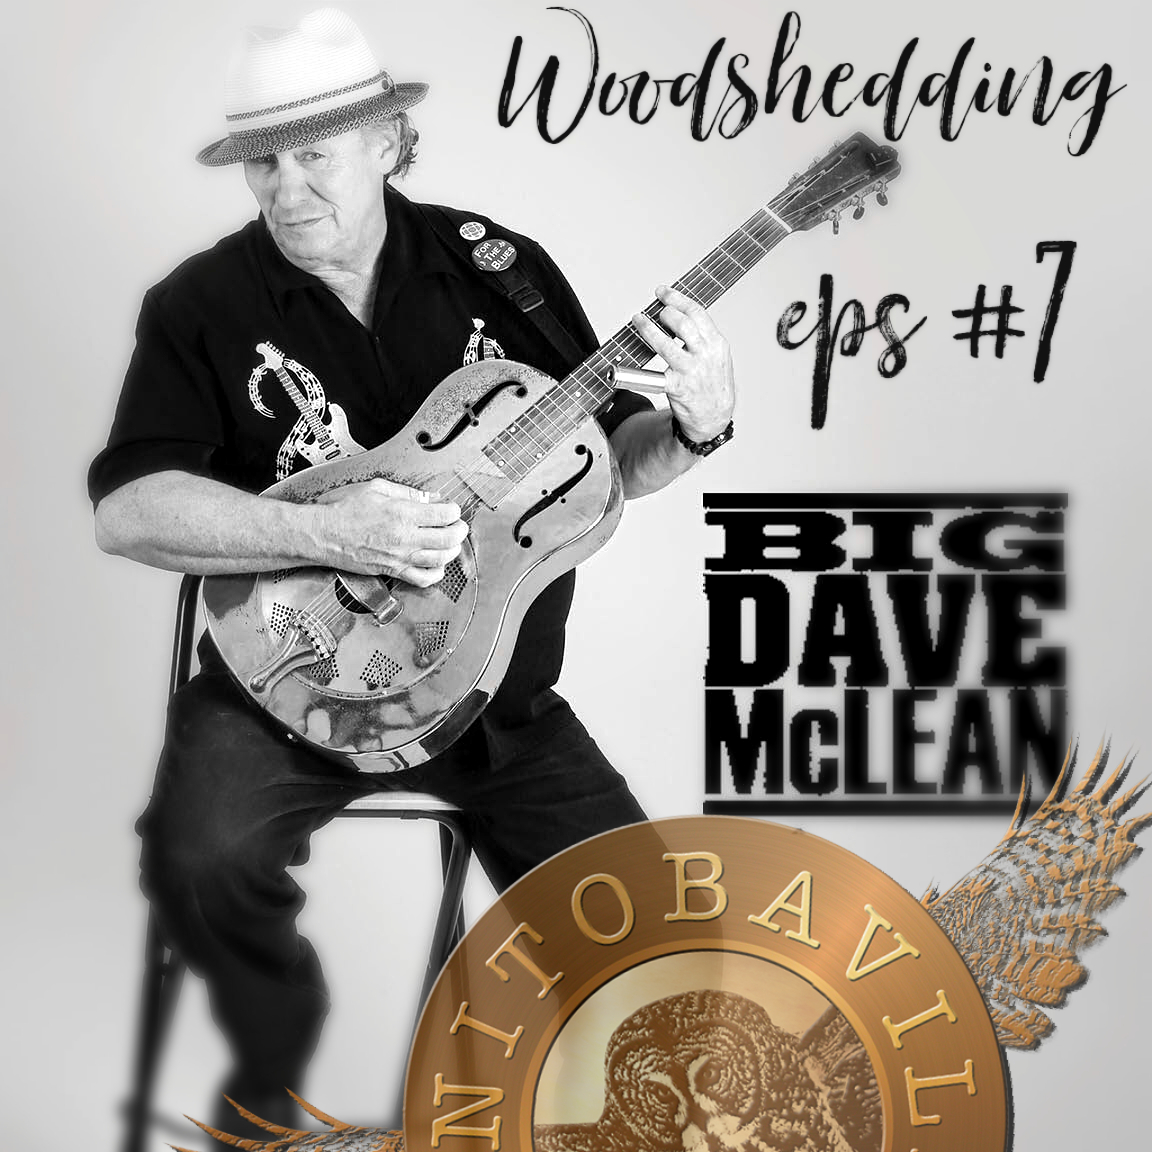 Big Dave Mclean house concert roots at rusty's manitoba blues manitobaville podcast music guitar voice.PNG